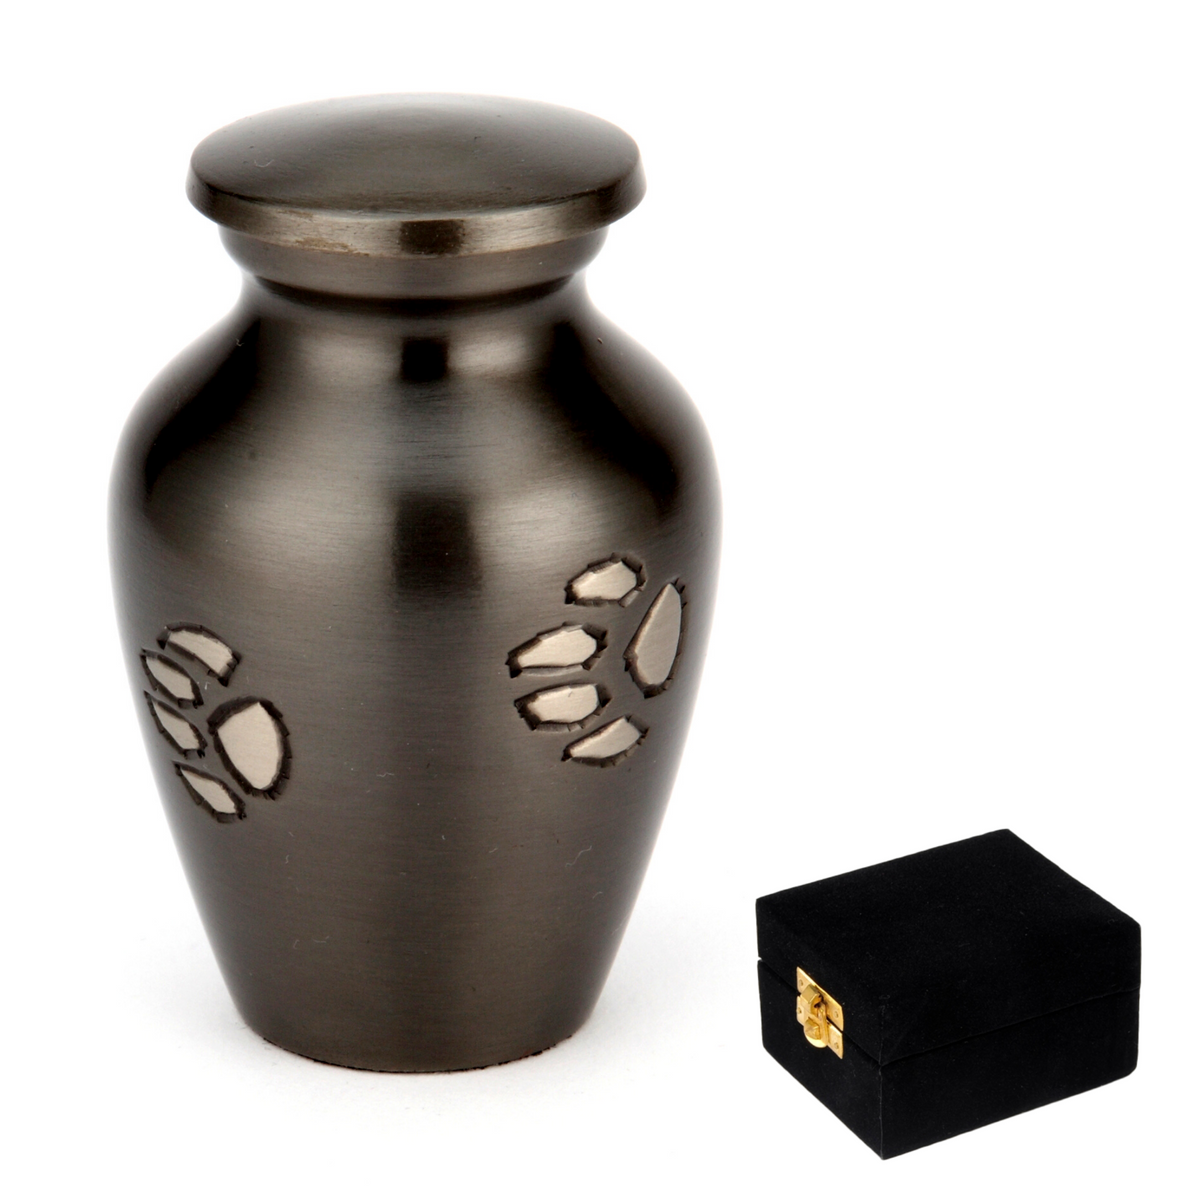 Jarrow Black Cremation Ashes 3 - Urns UK